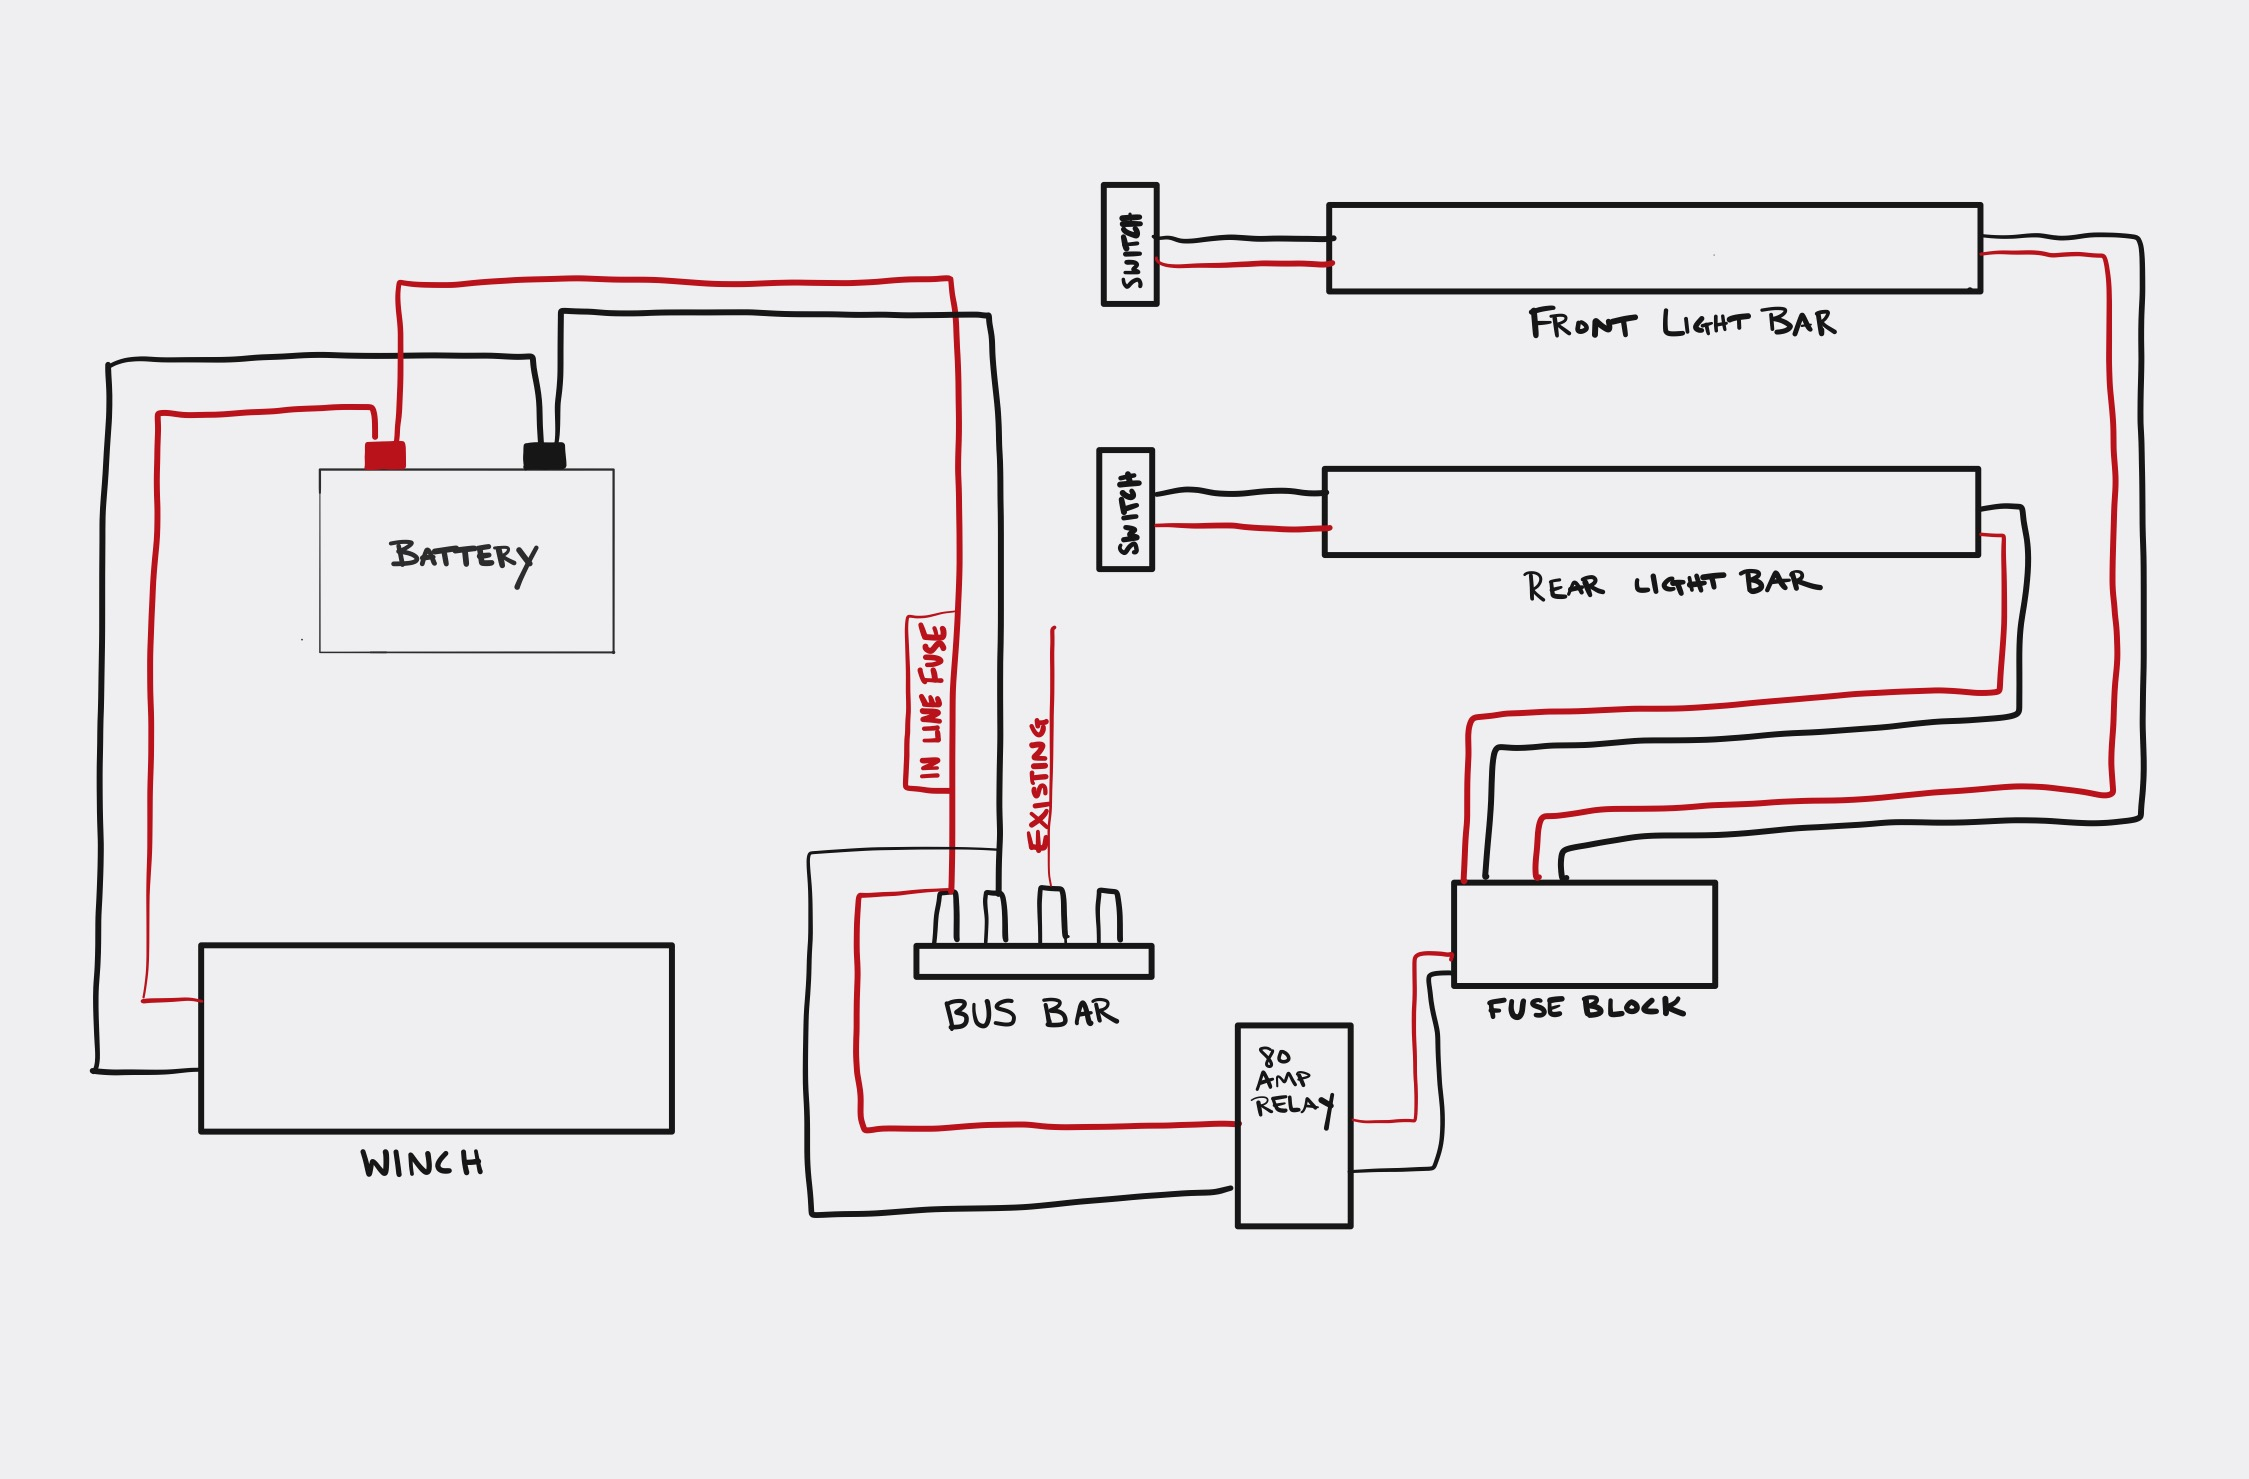 bus bar wiring diagram bus image wiring diagram bus bar wiring system solidfonts on bus bar wiring diagram